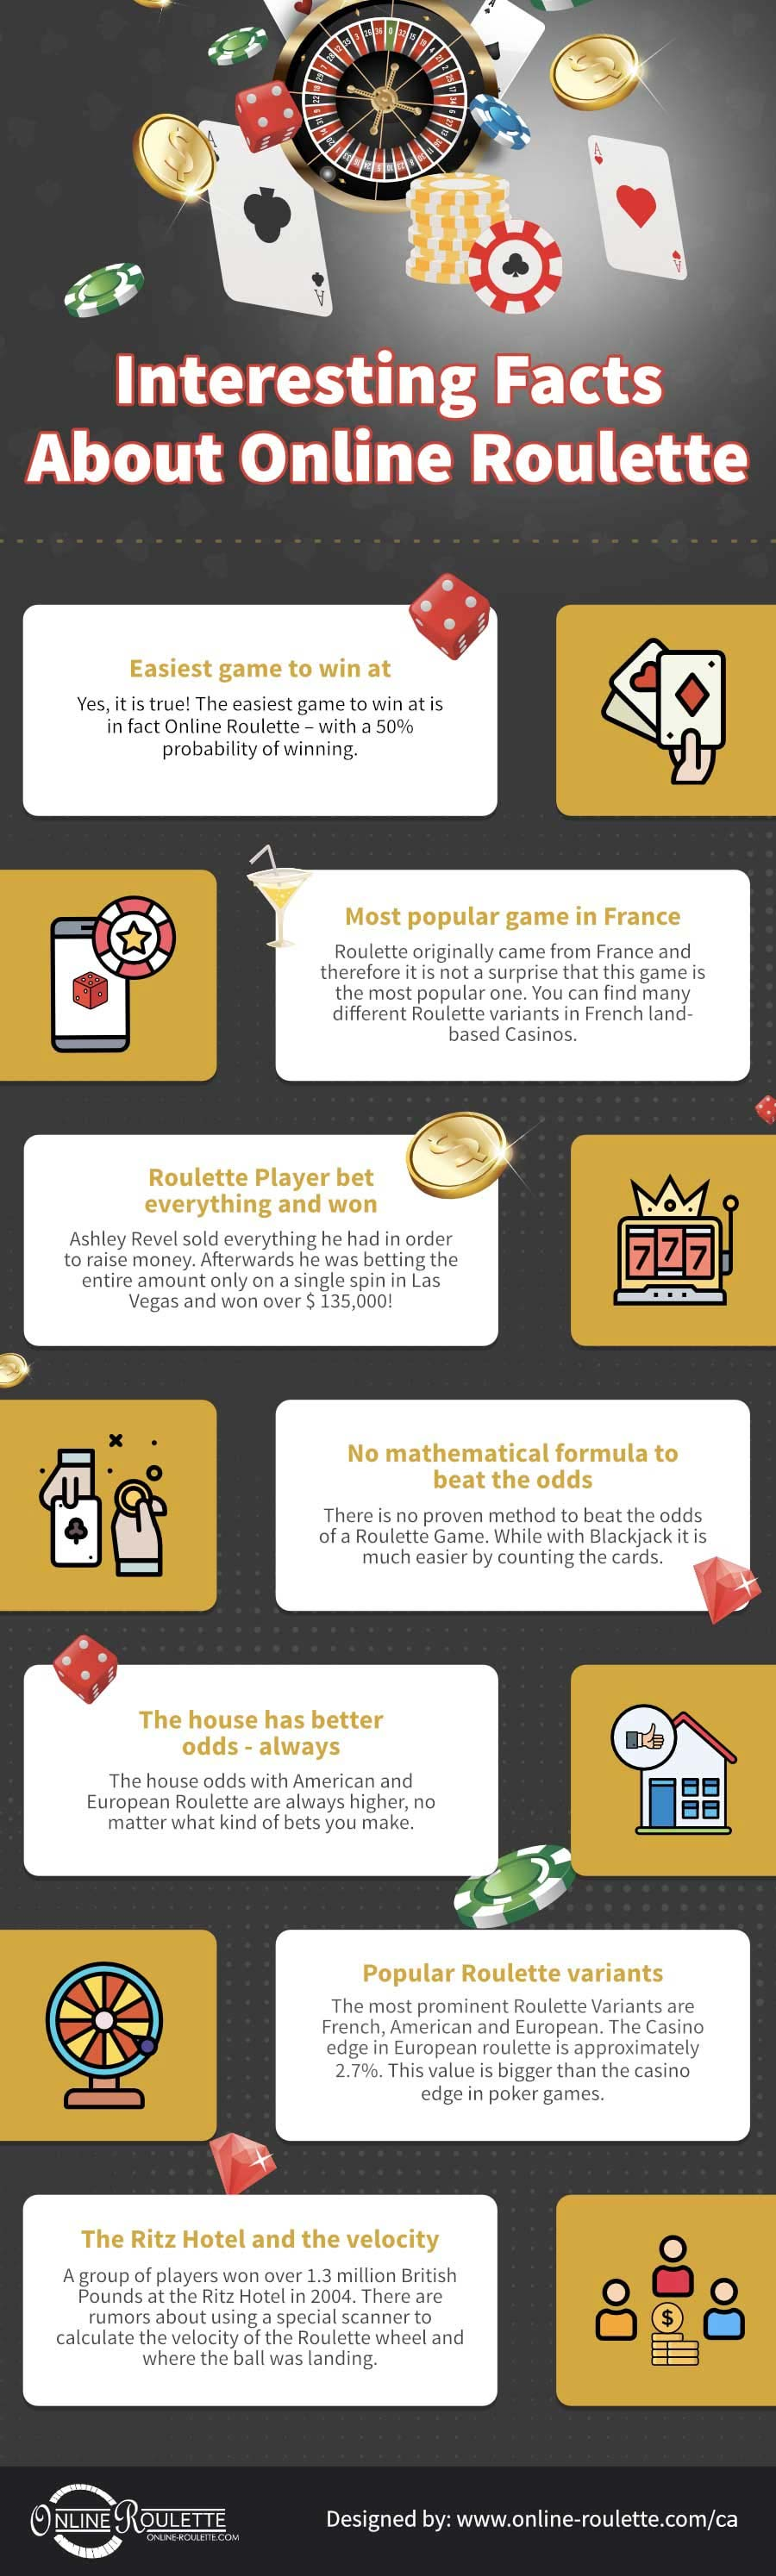 Interesting facts about online roulette canada